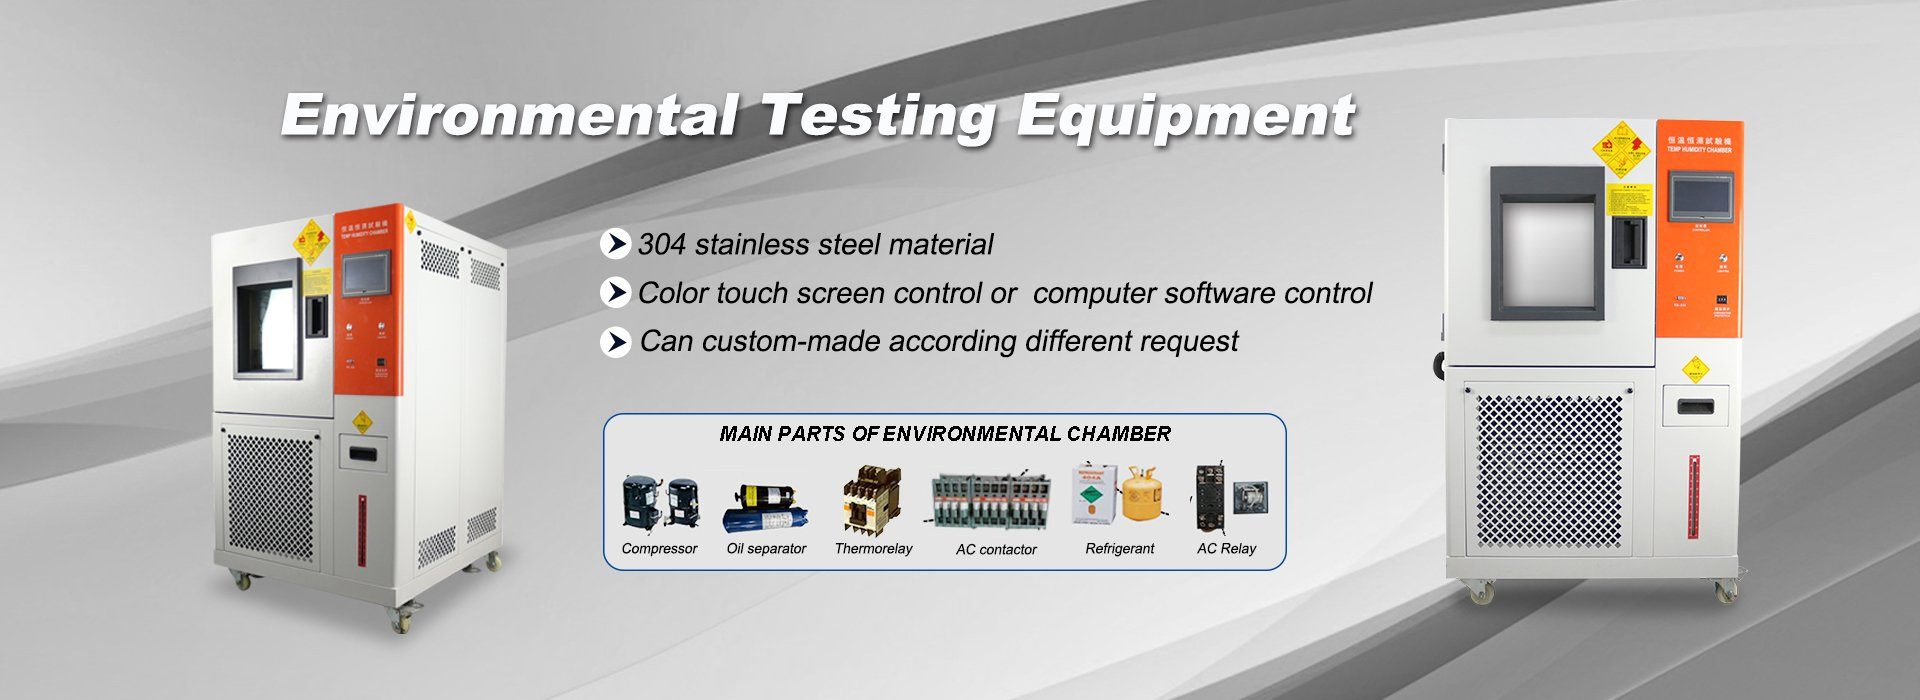 environmental test equipment